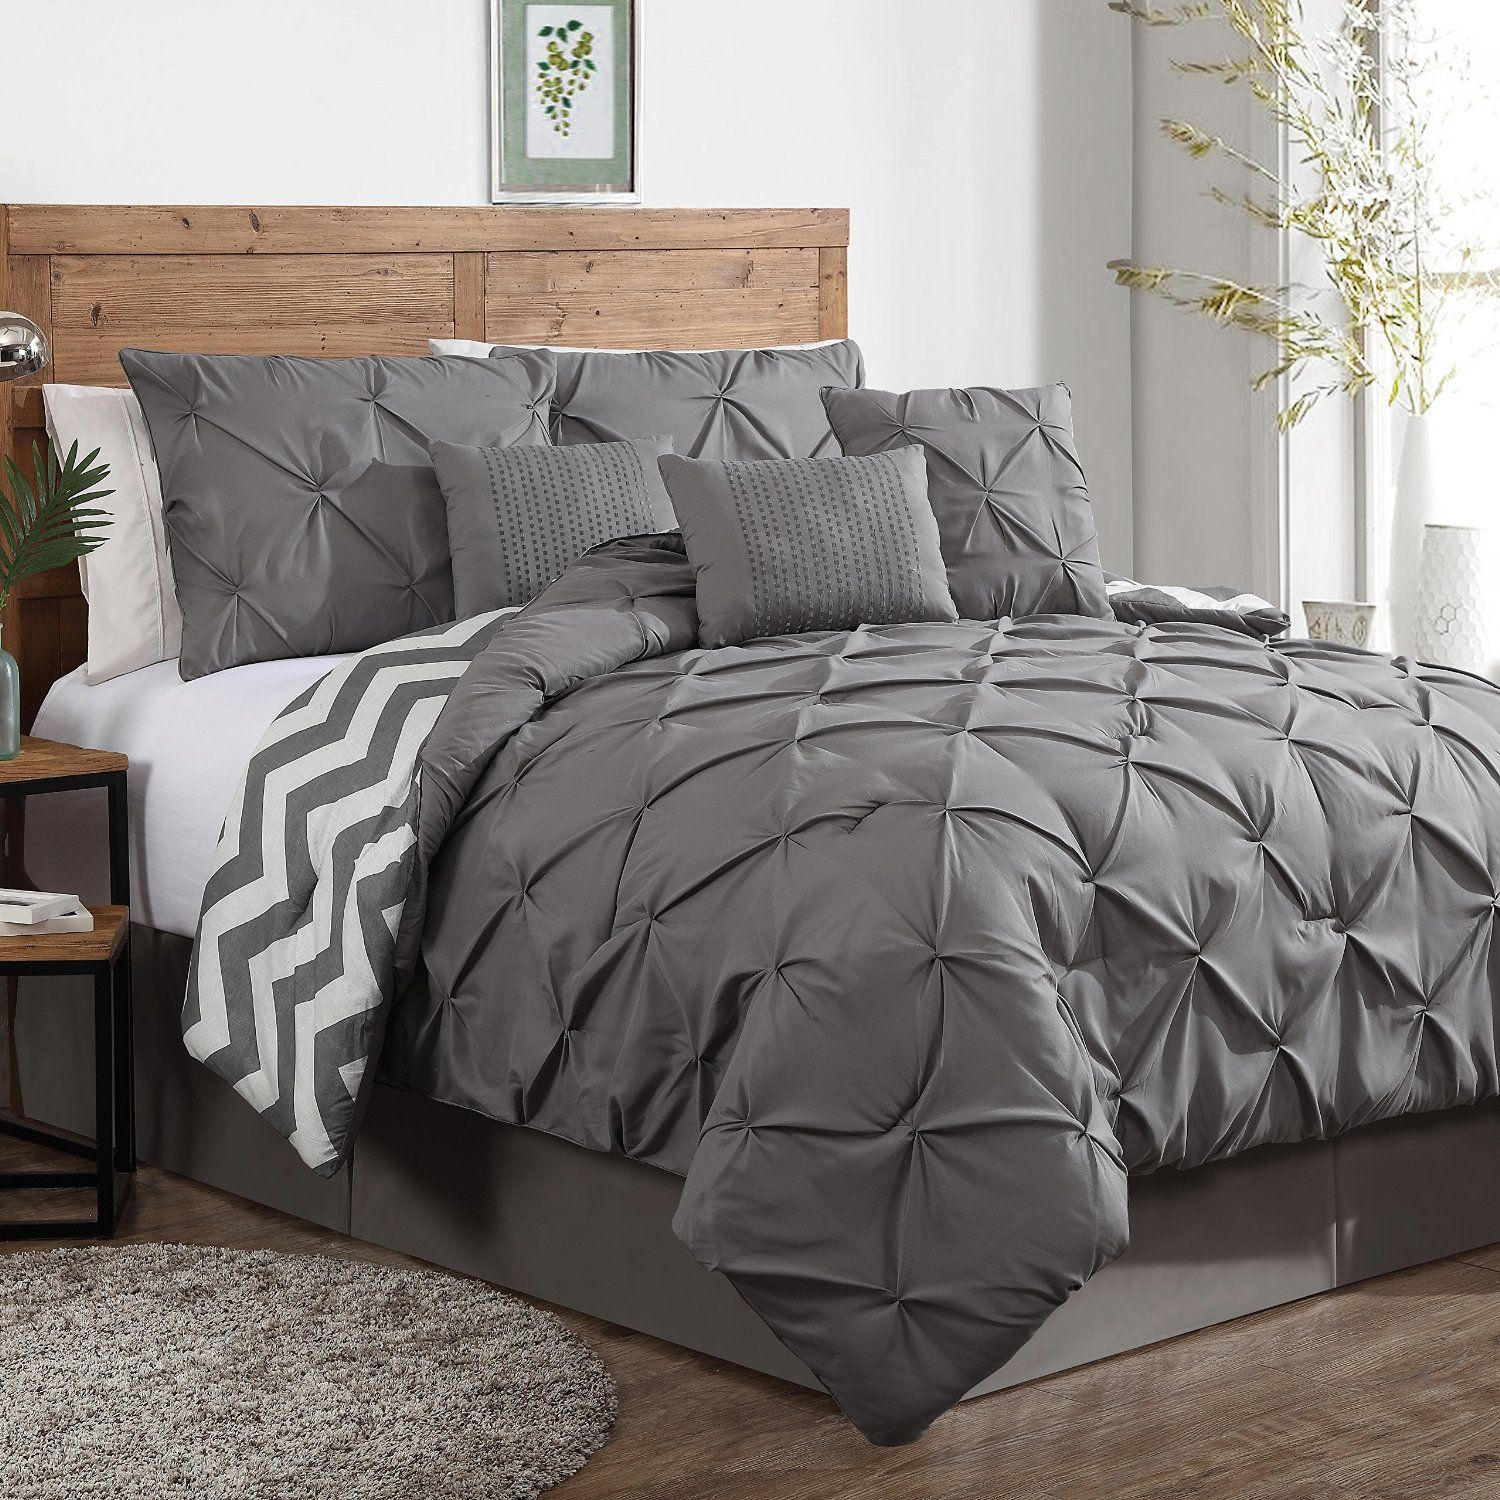 gray bedding good comforter looking sets color size queen grey